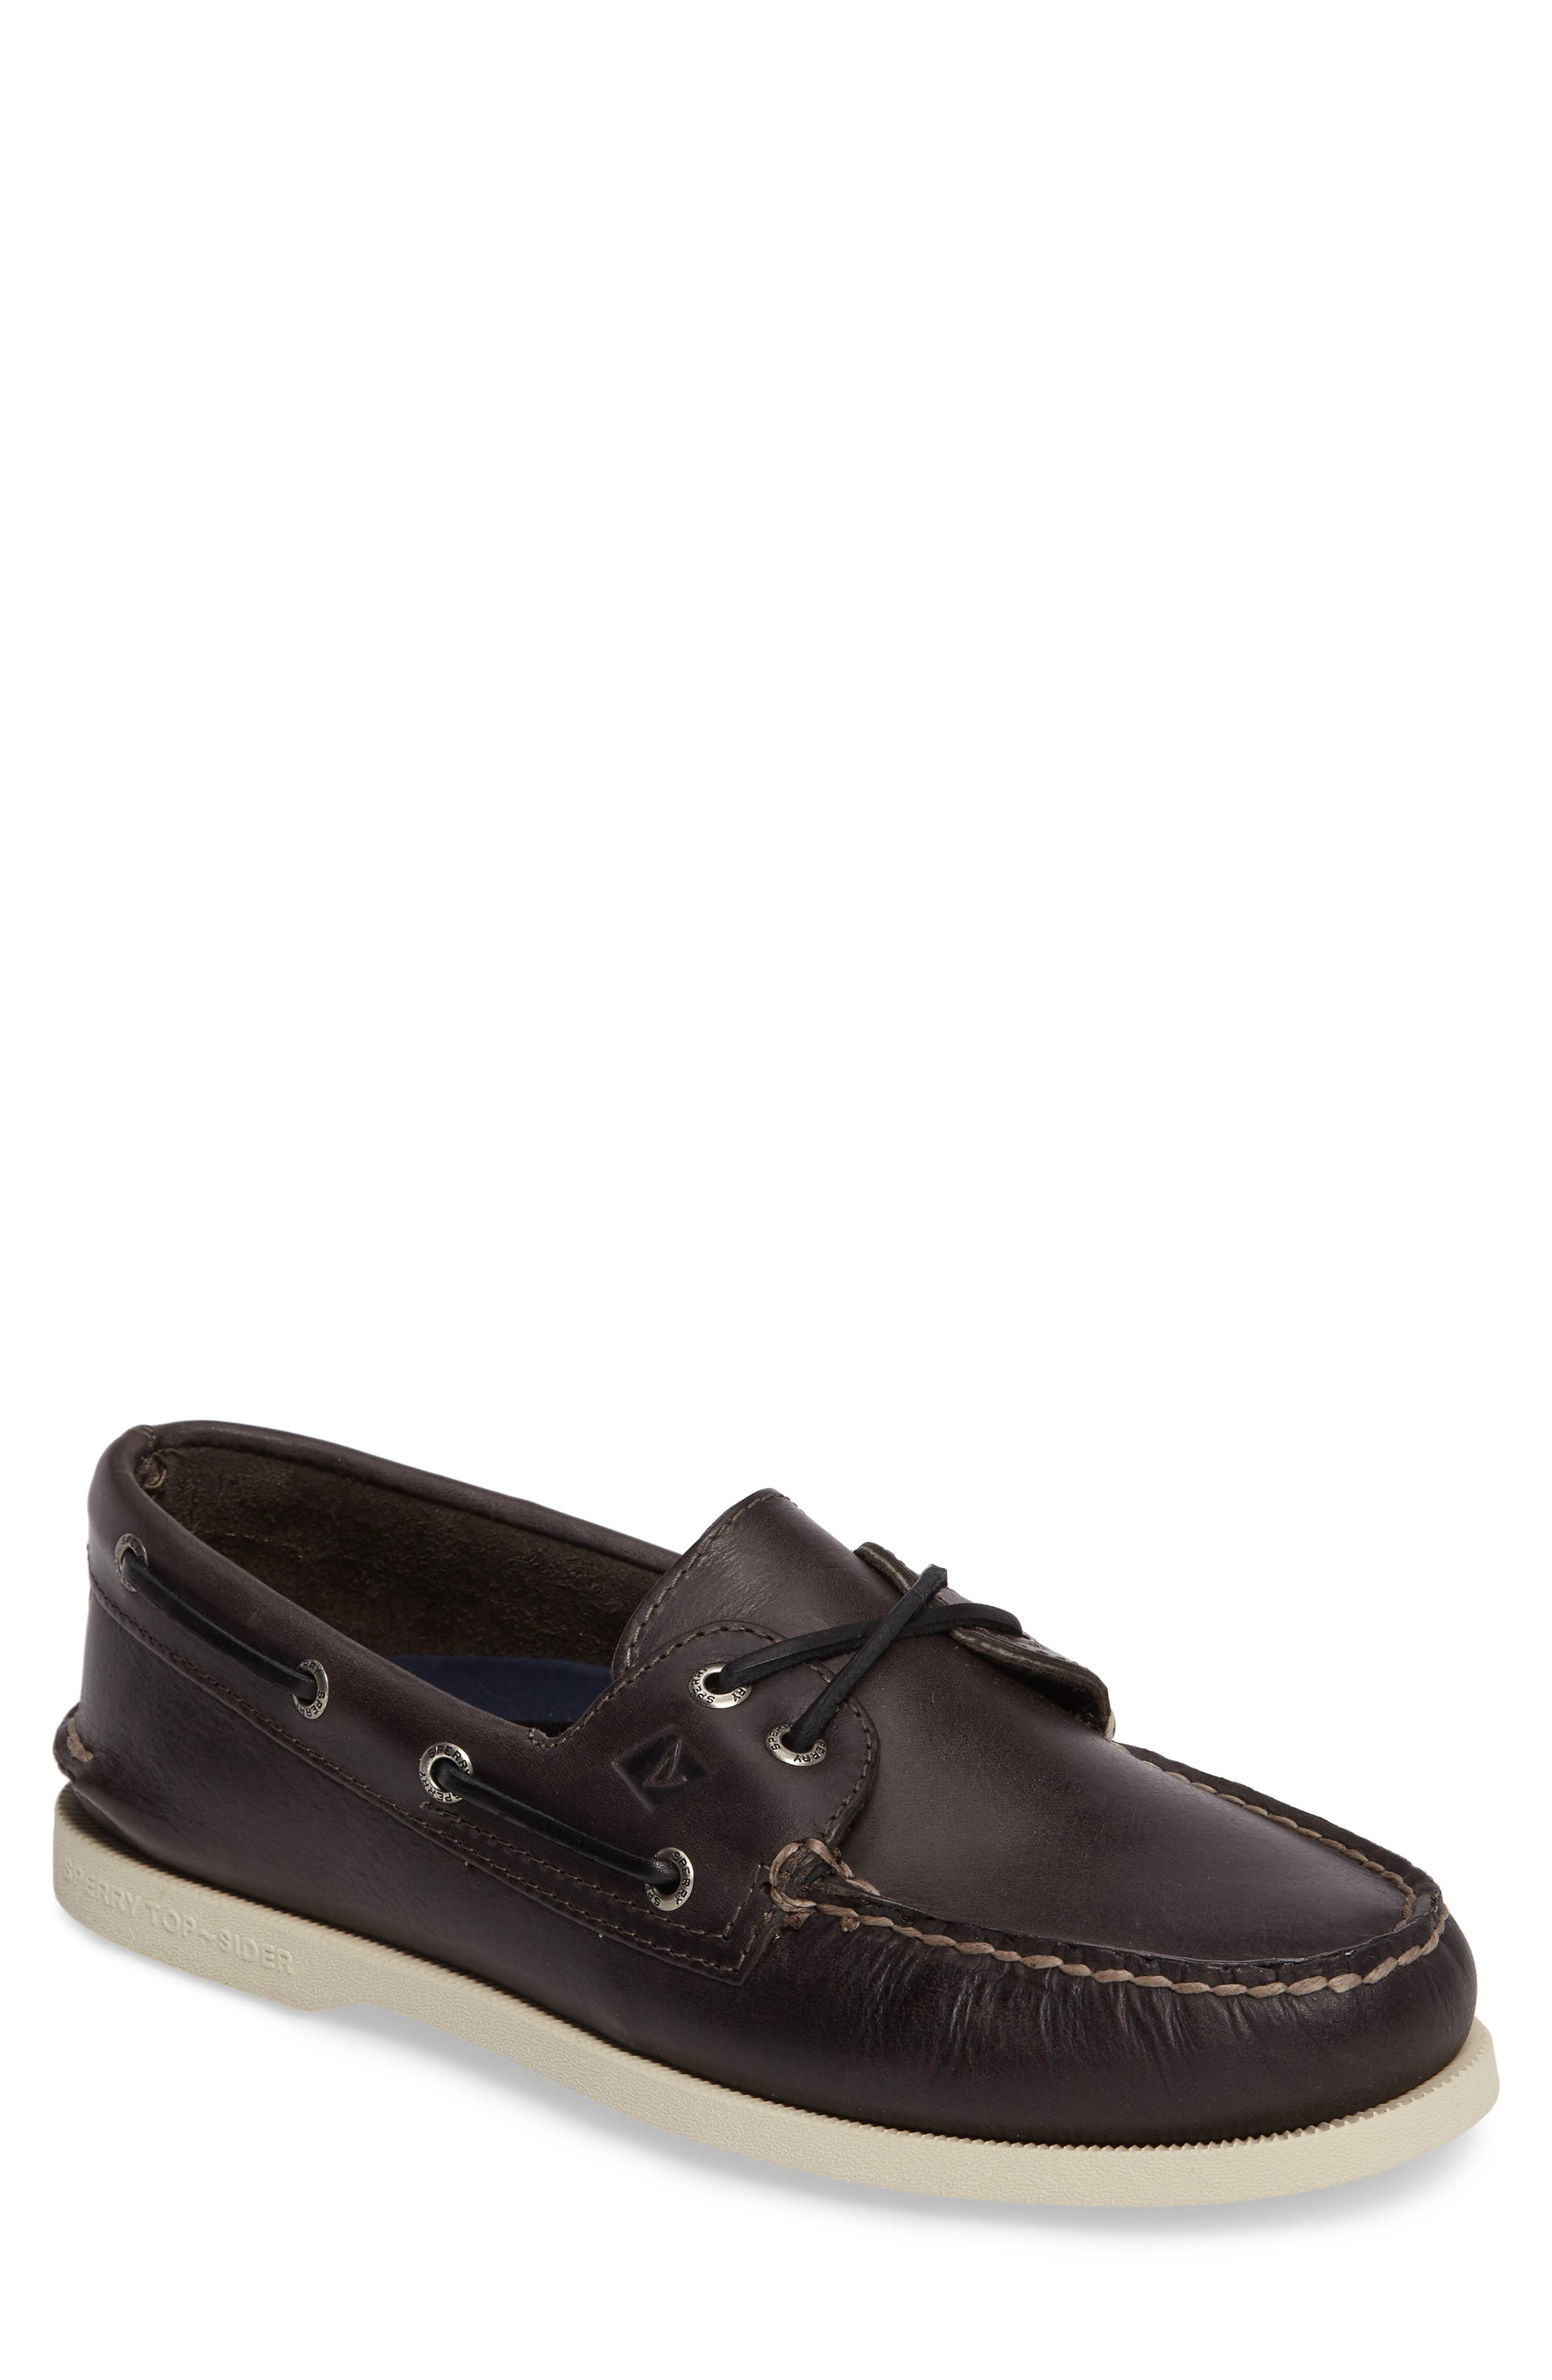 Authentic Original Boat Shoe,                         Main,                         color, 021